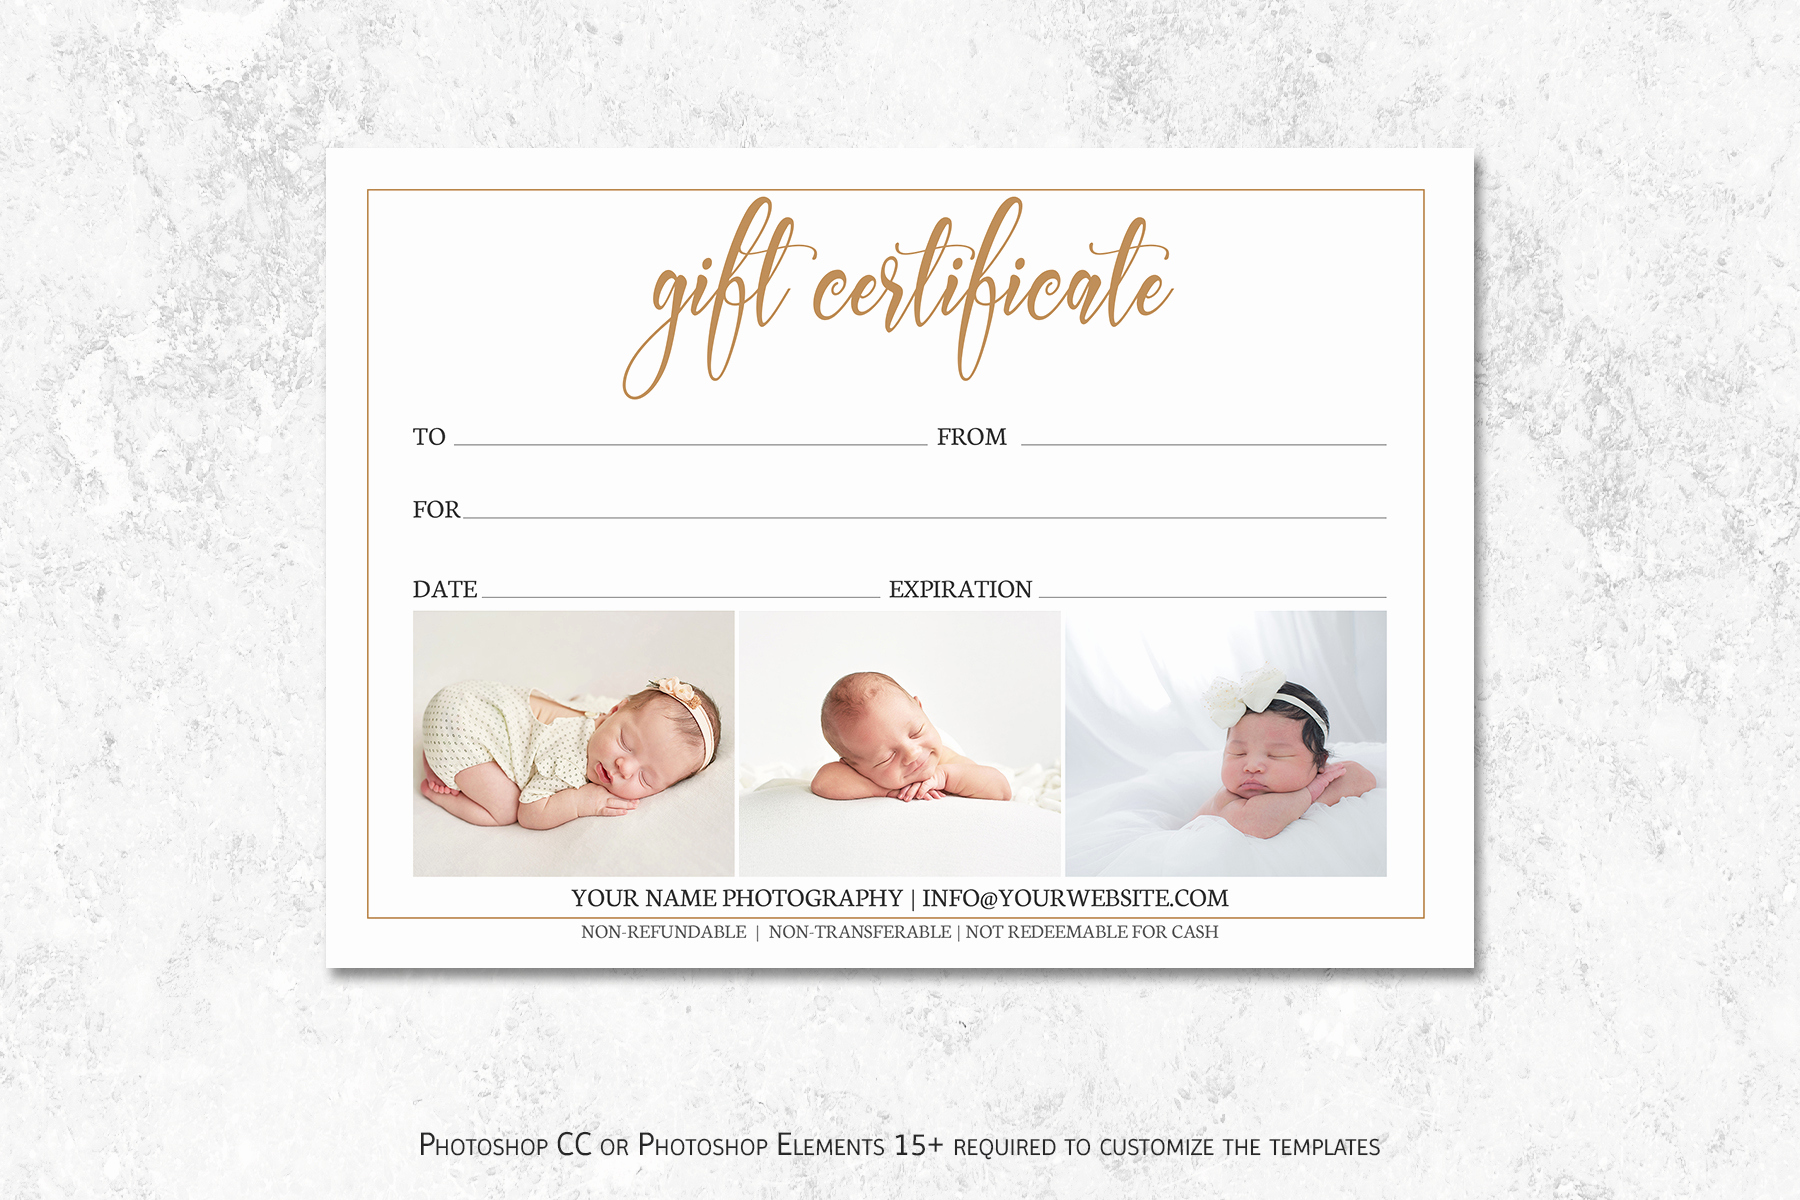 Template for A Gift Certificate Elegant Graphy Gift Certificate Template